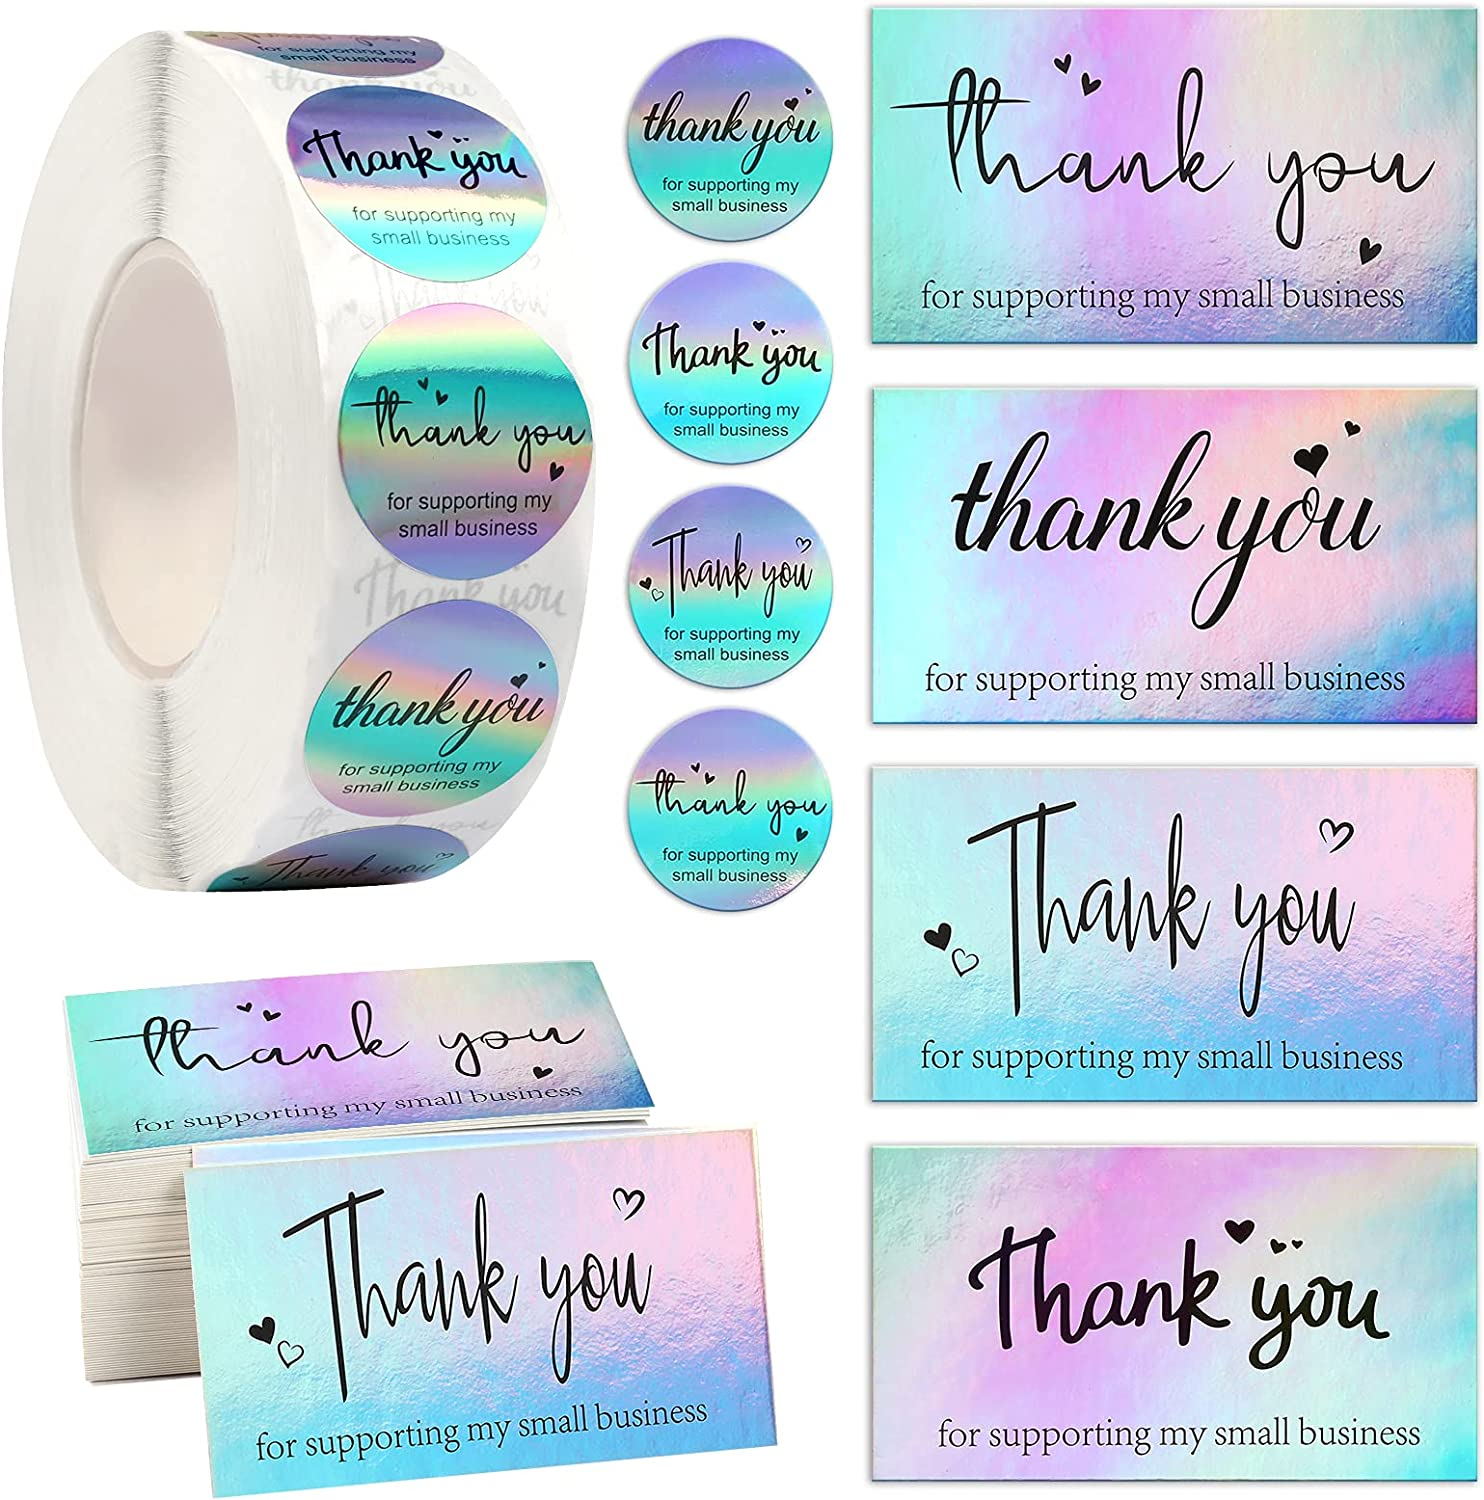 1120PCS Thank You Cards Set Time sale Rainbow Silv 120 Mail order Pieces Holographic